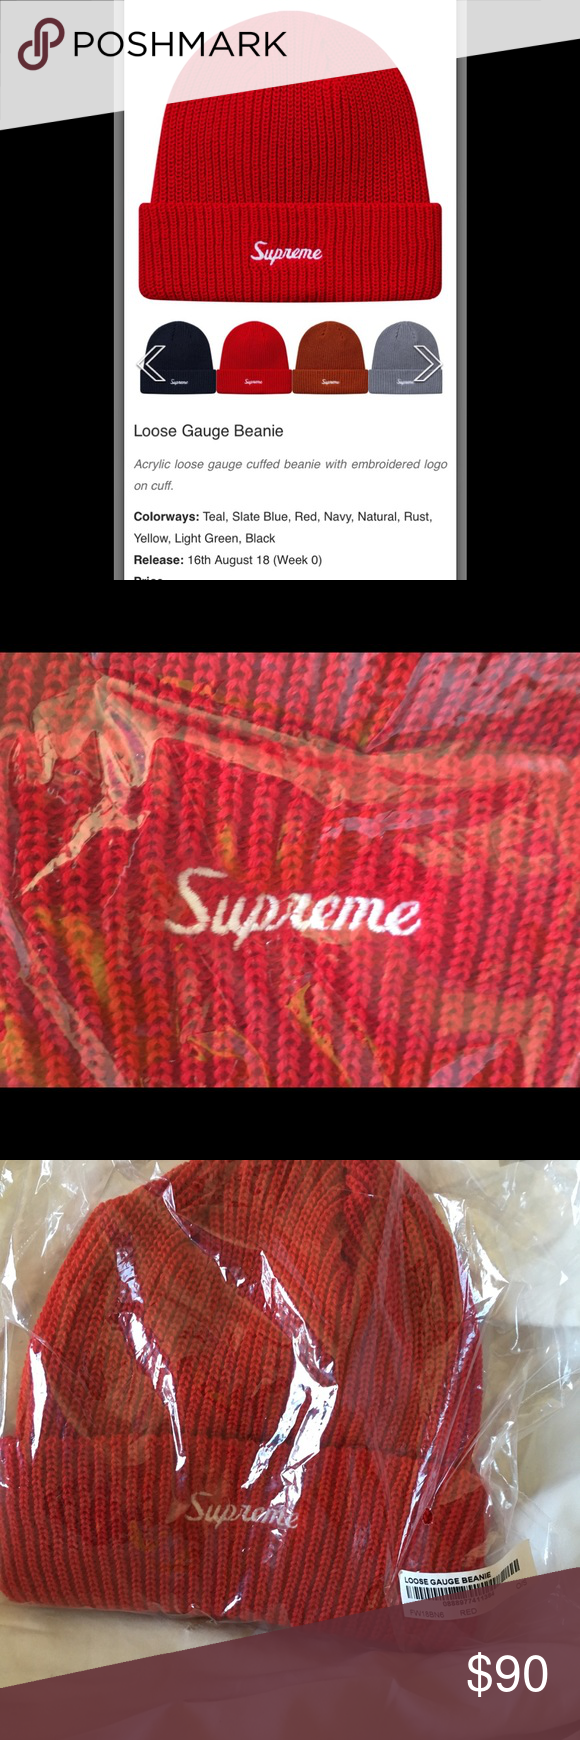 a3779656078 Supreme Loose Gauge Beanie Loose Gauge Beanie Acrylic loose gauge cuffed beanie  with embroidered logo on cuff. Color  Red Release  16th August 18 (Week 0)  ...